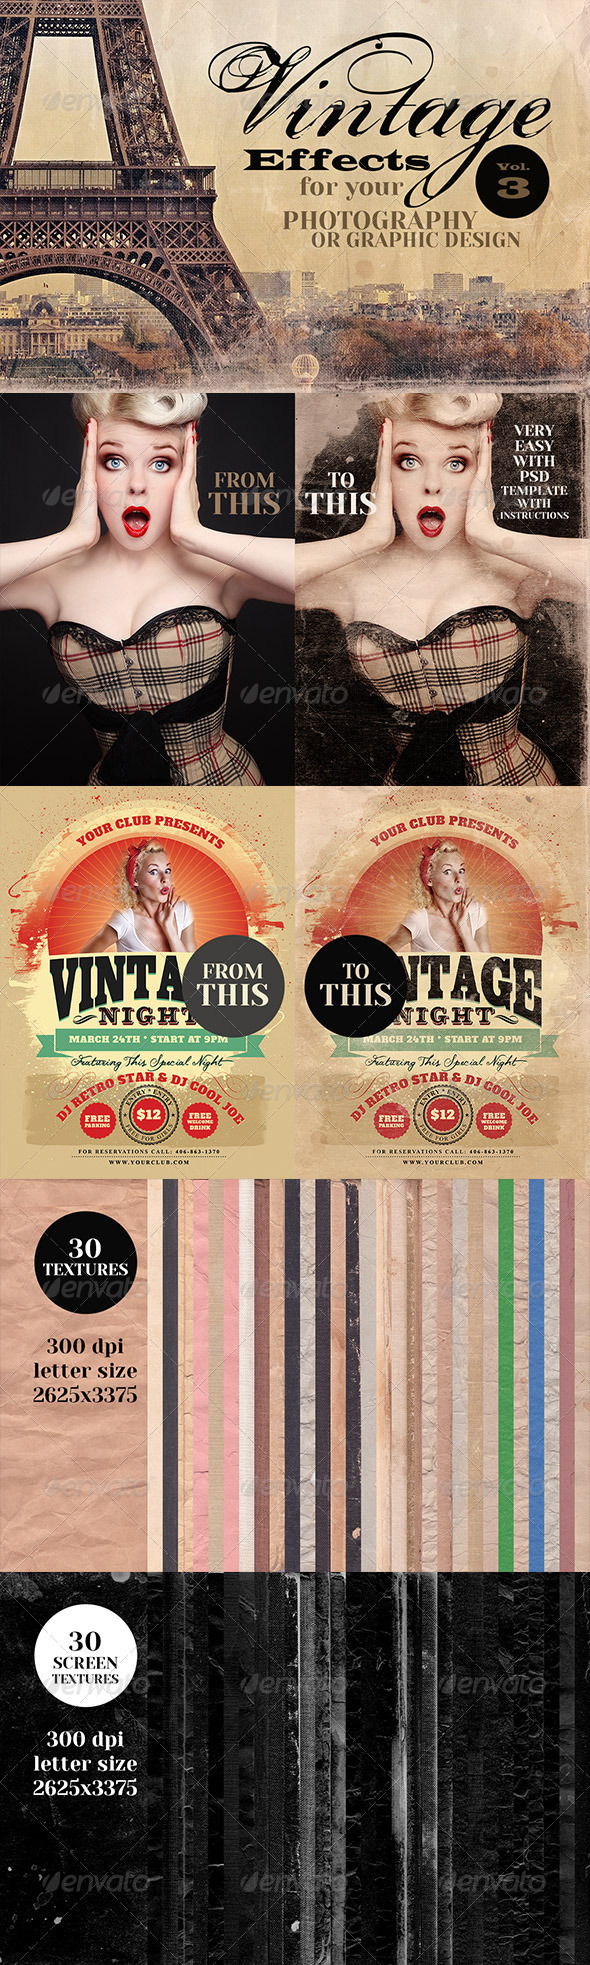 Vintage Effects for Photo, Designs 3 - Miscellaneous Photo Templates